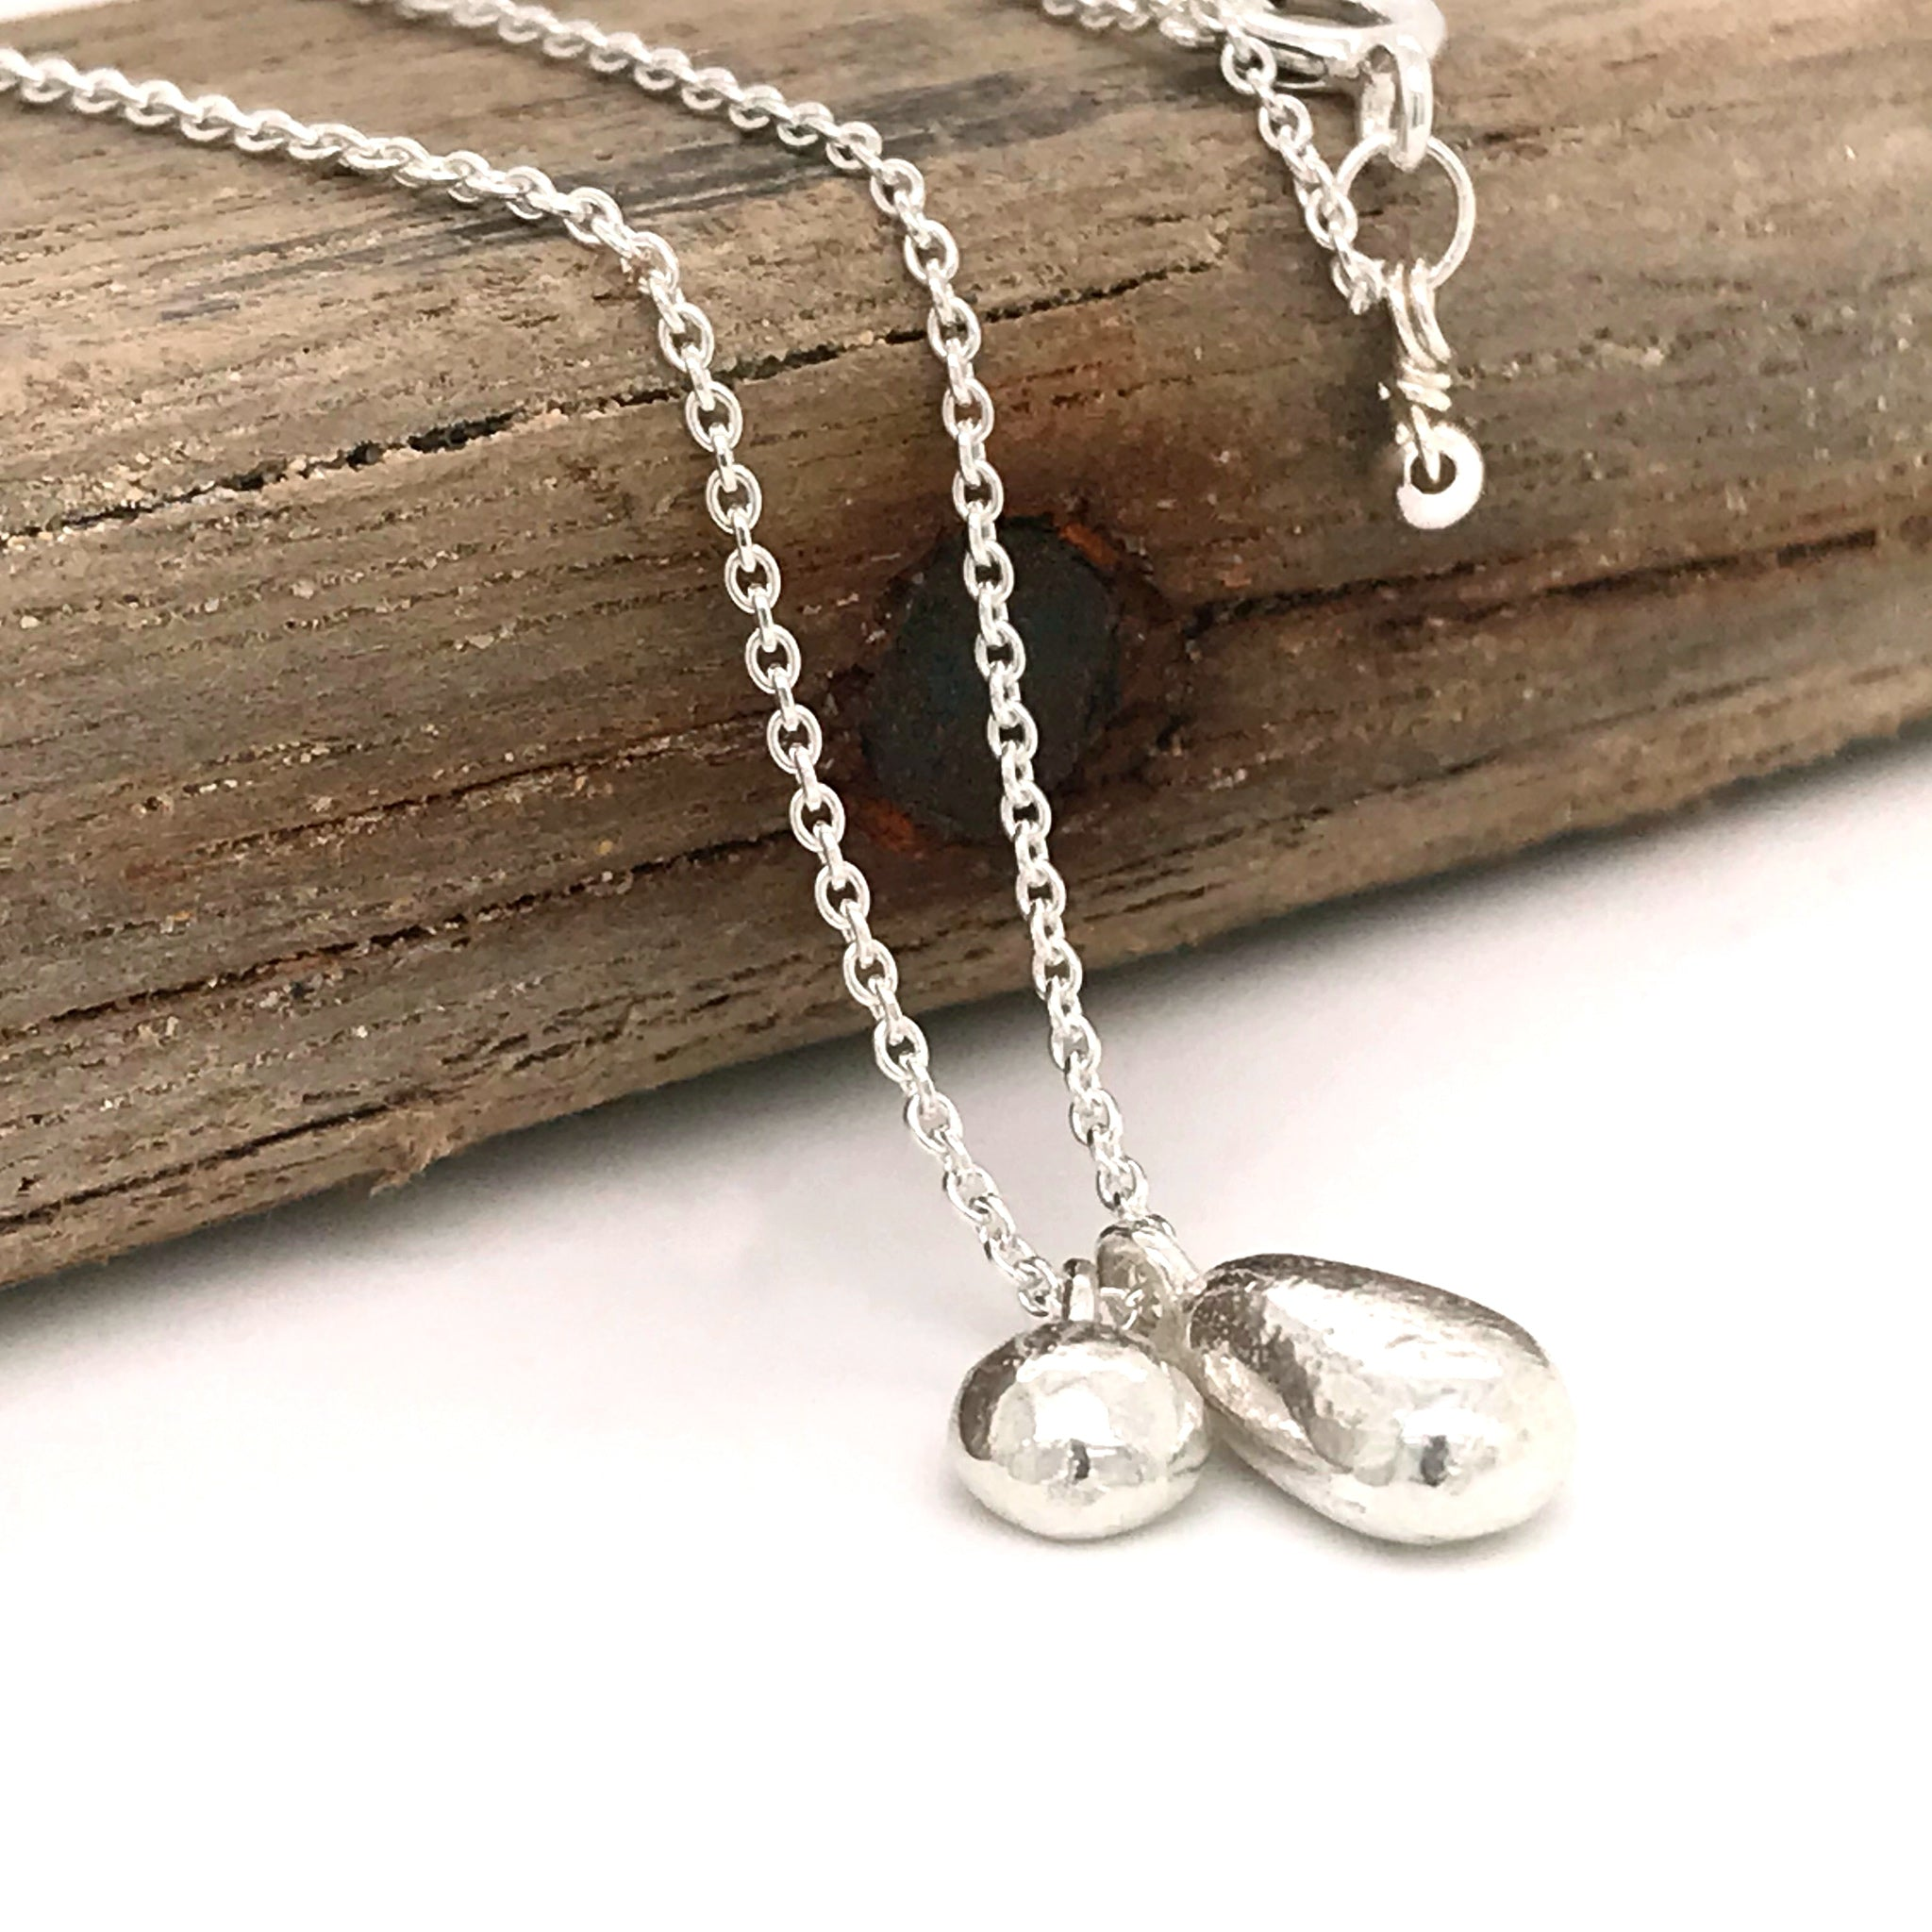 sterling silver charm necklace kriket broadhurst jewellery